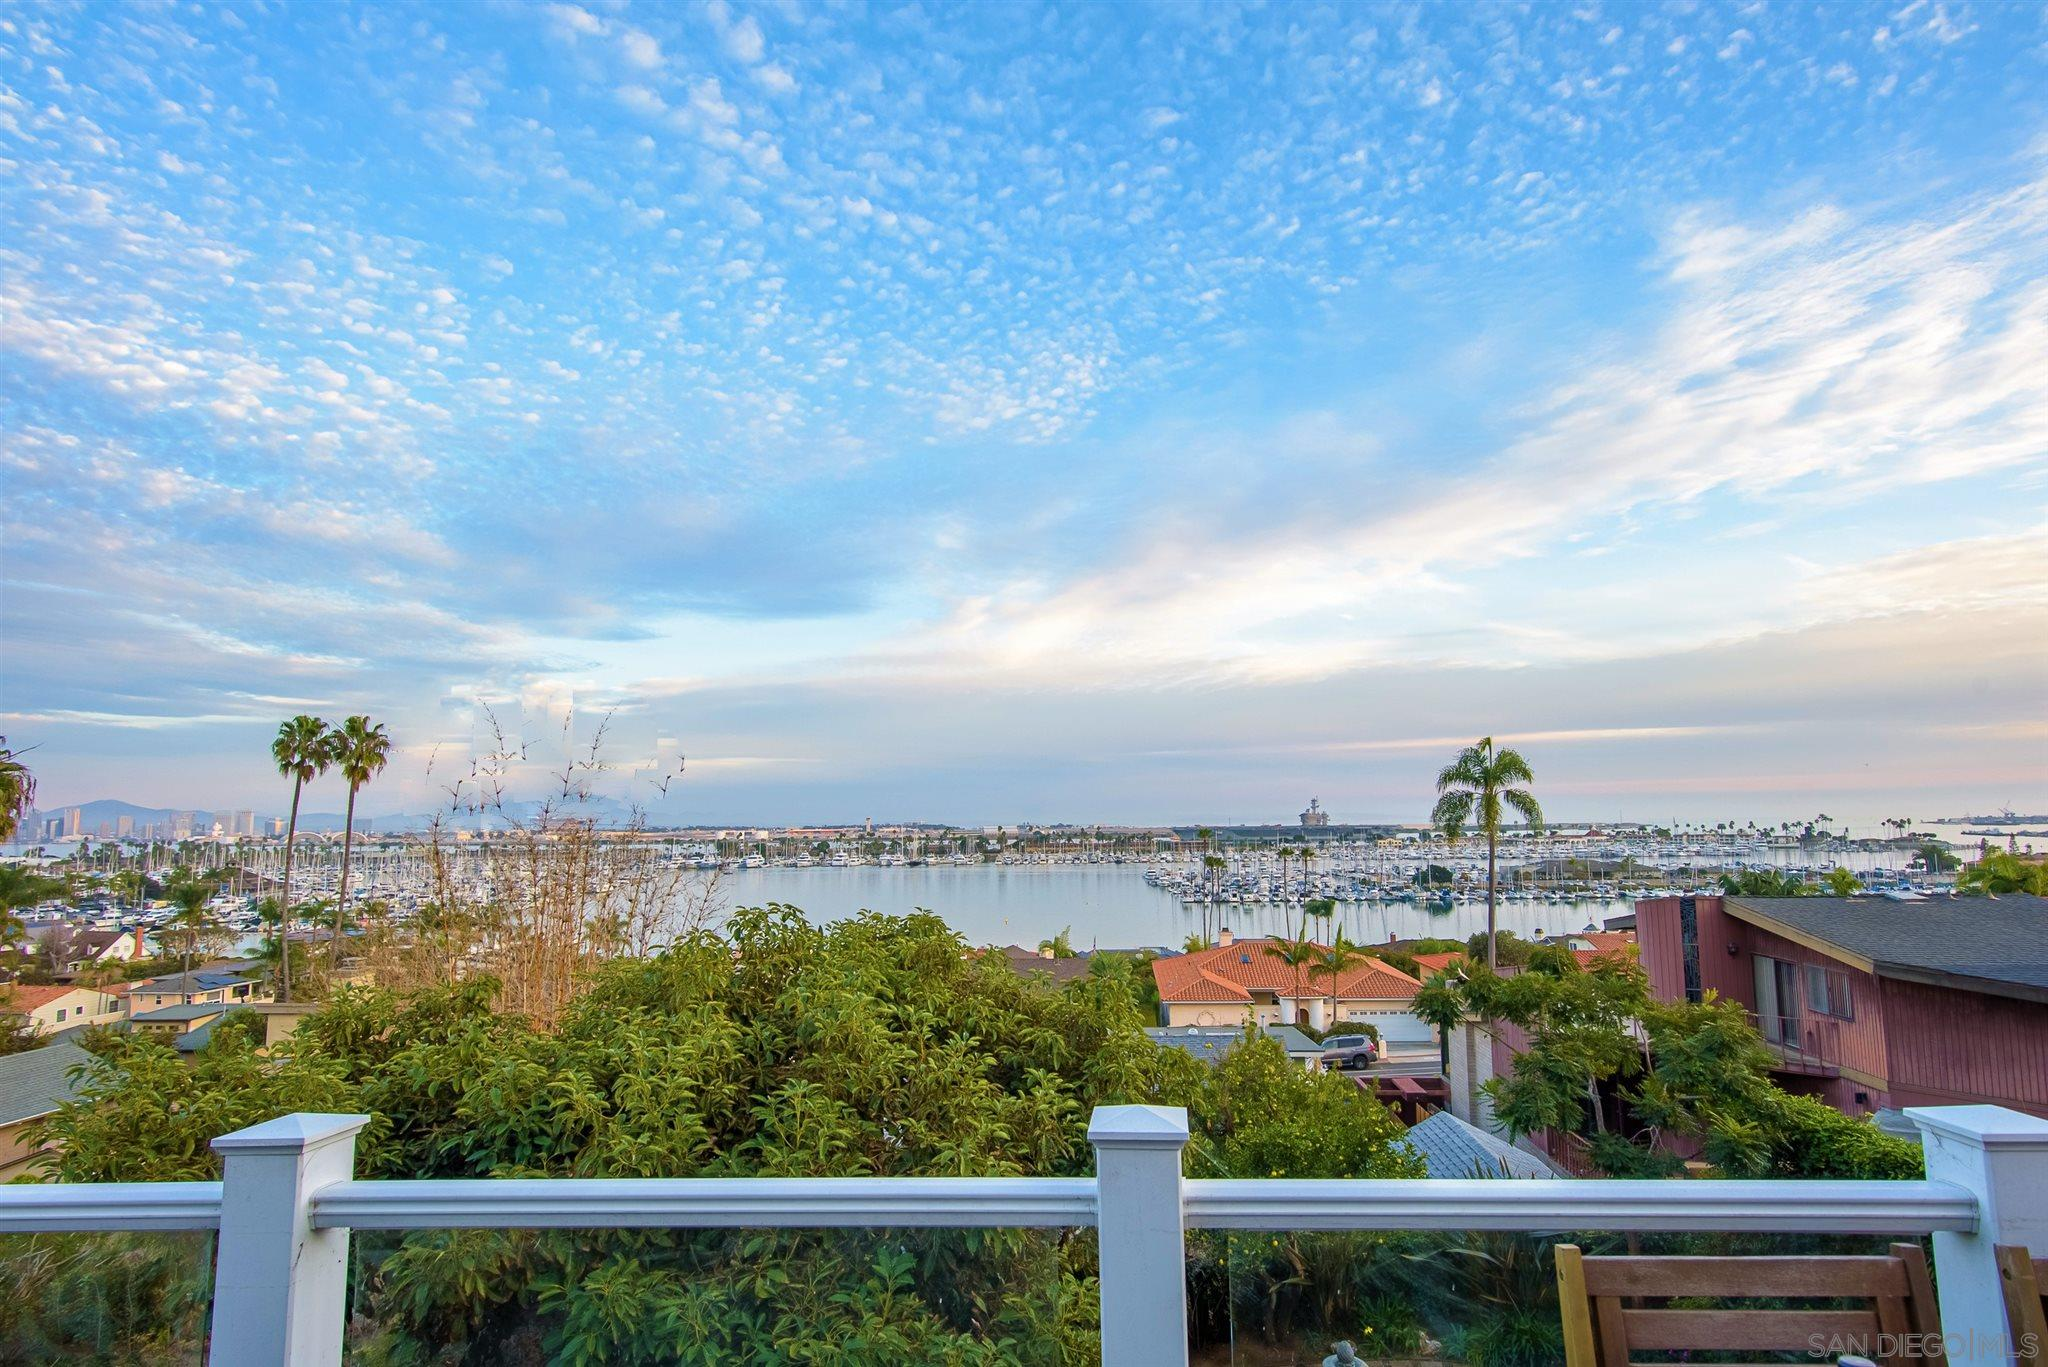 *Panoramic views from every level on the south side of Armada Terrace - the best in Point Loma. *Multiple outdoor spaces including 2 huge view balconies & spacious yard with outdoor kitchen, firepit & established fruit trees.  *Entertainers entry level kitchen, living spaces, dining room, breakfast nook and balcony. *Bessemer St & trail make an easy walk to harbor/SD Bay, beach, yacht clubs, Shelter Island & Point Loma Village restaurants & shops. *Views of harbor, SD city skyline, Coronado Islands & endless ocean all the way to Mexico.